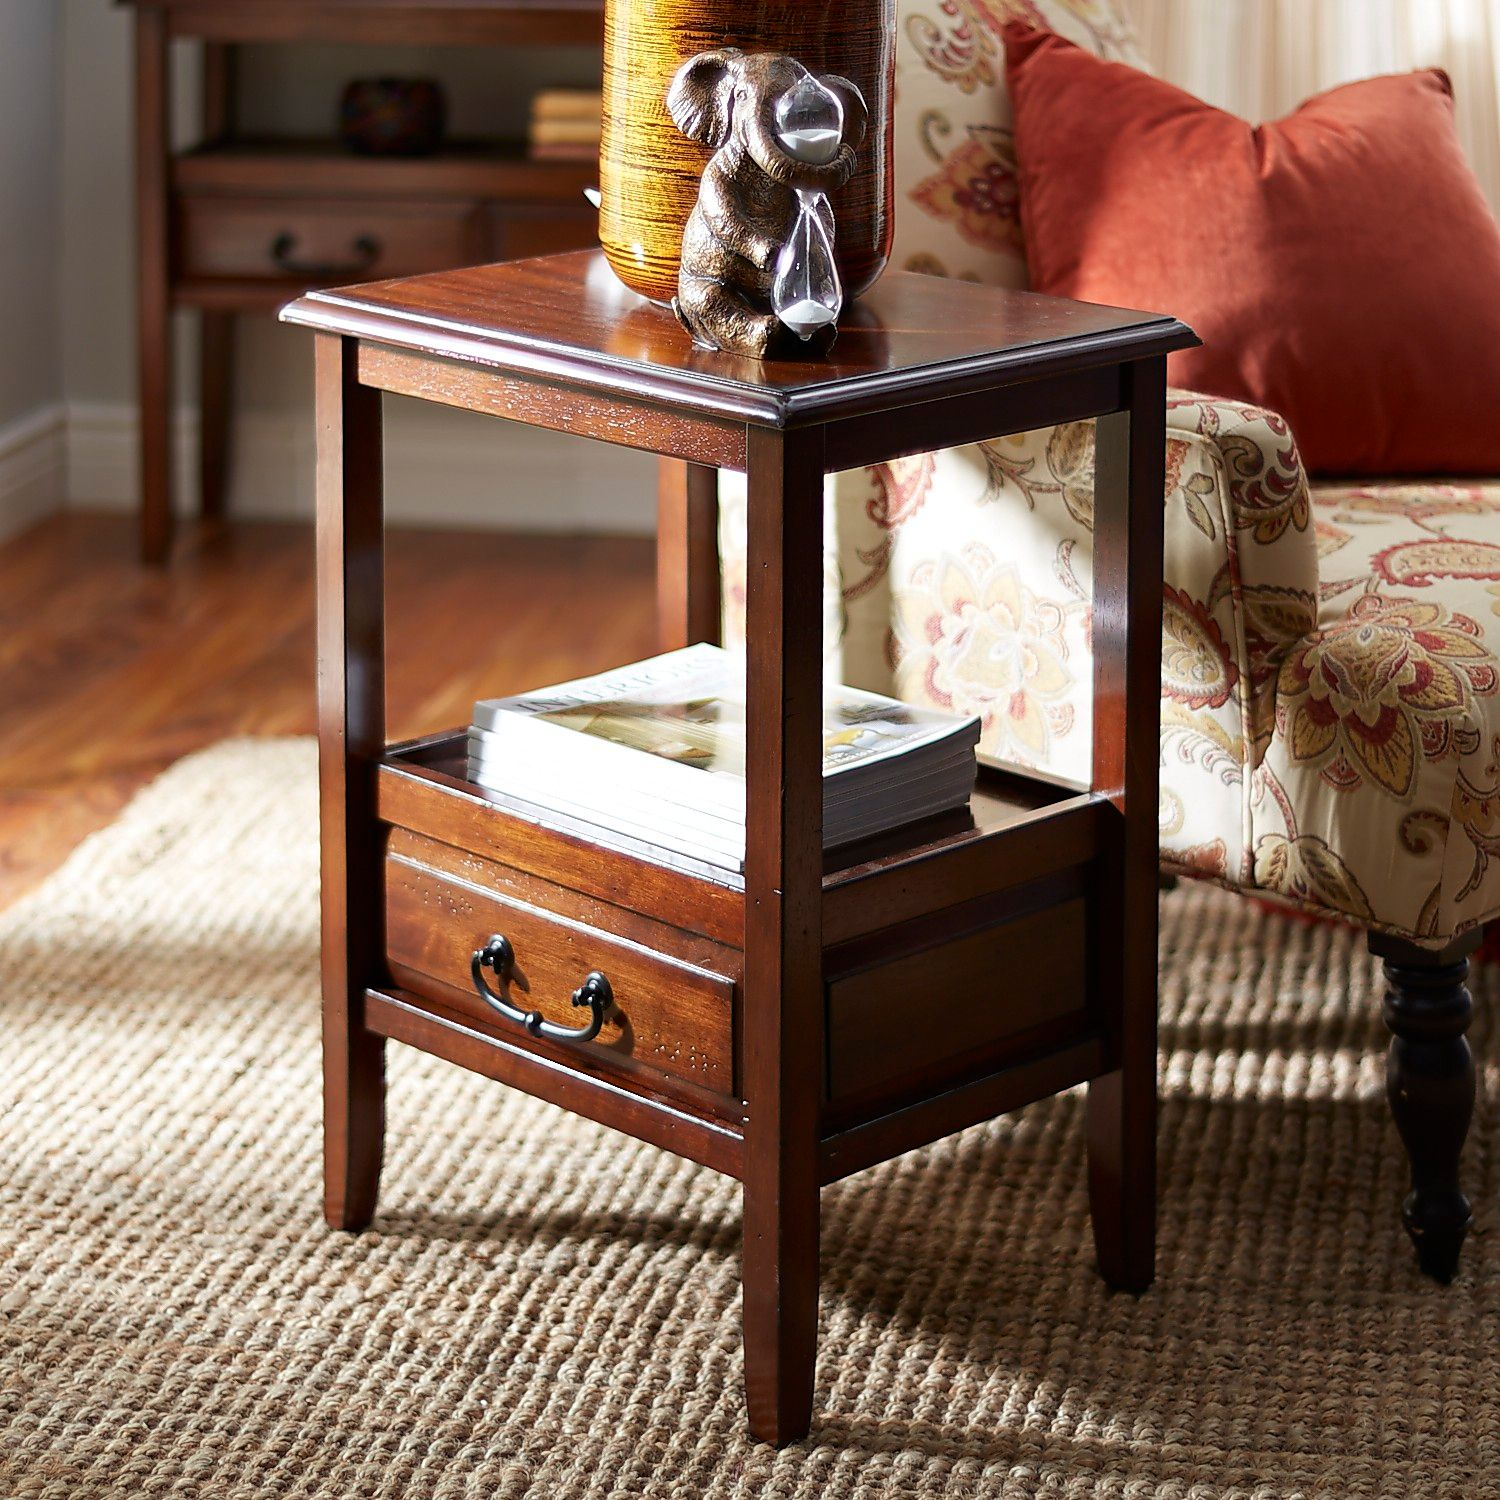 anywhere tuscan brown end table with pull handles pier imports one accent pottery barn benchwright dining bar storage cabinet solid wood corner lawn chair umbrella bella green